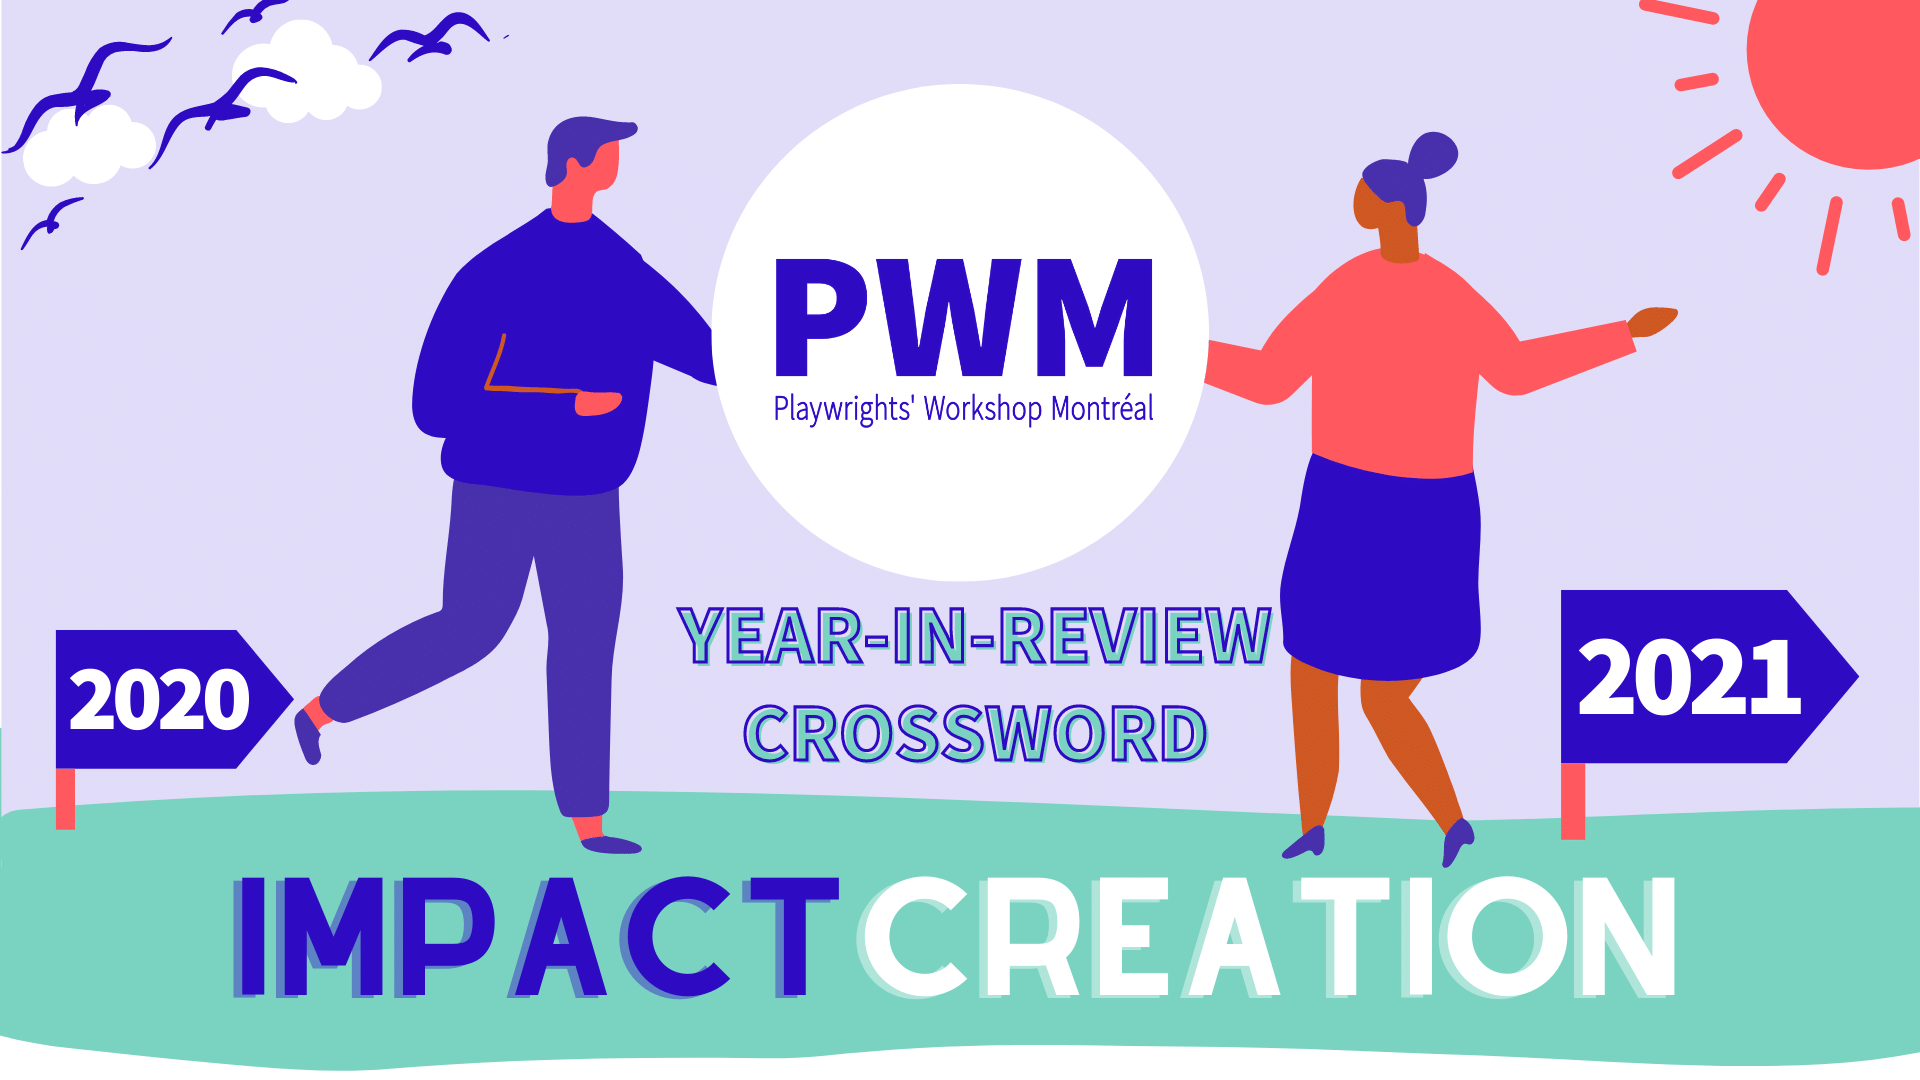 Illustration of 2 characters carrying PWM from 2020 to 2021. This is the year-in-review crossword puzzle for the Impact Creation campaign.